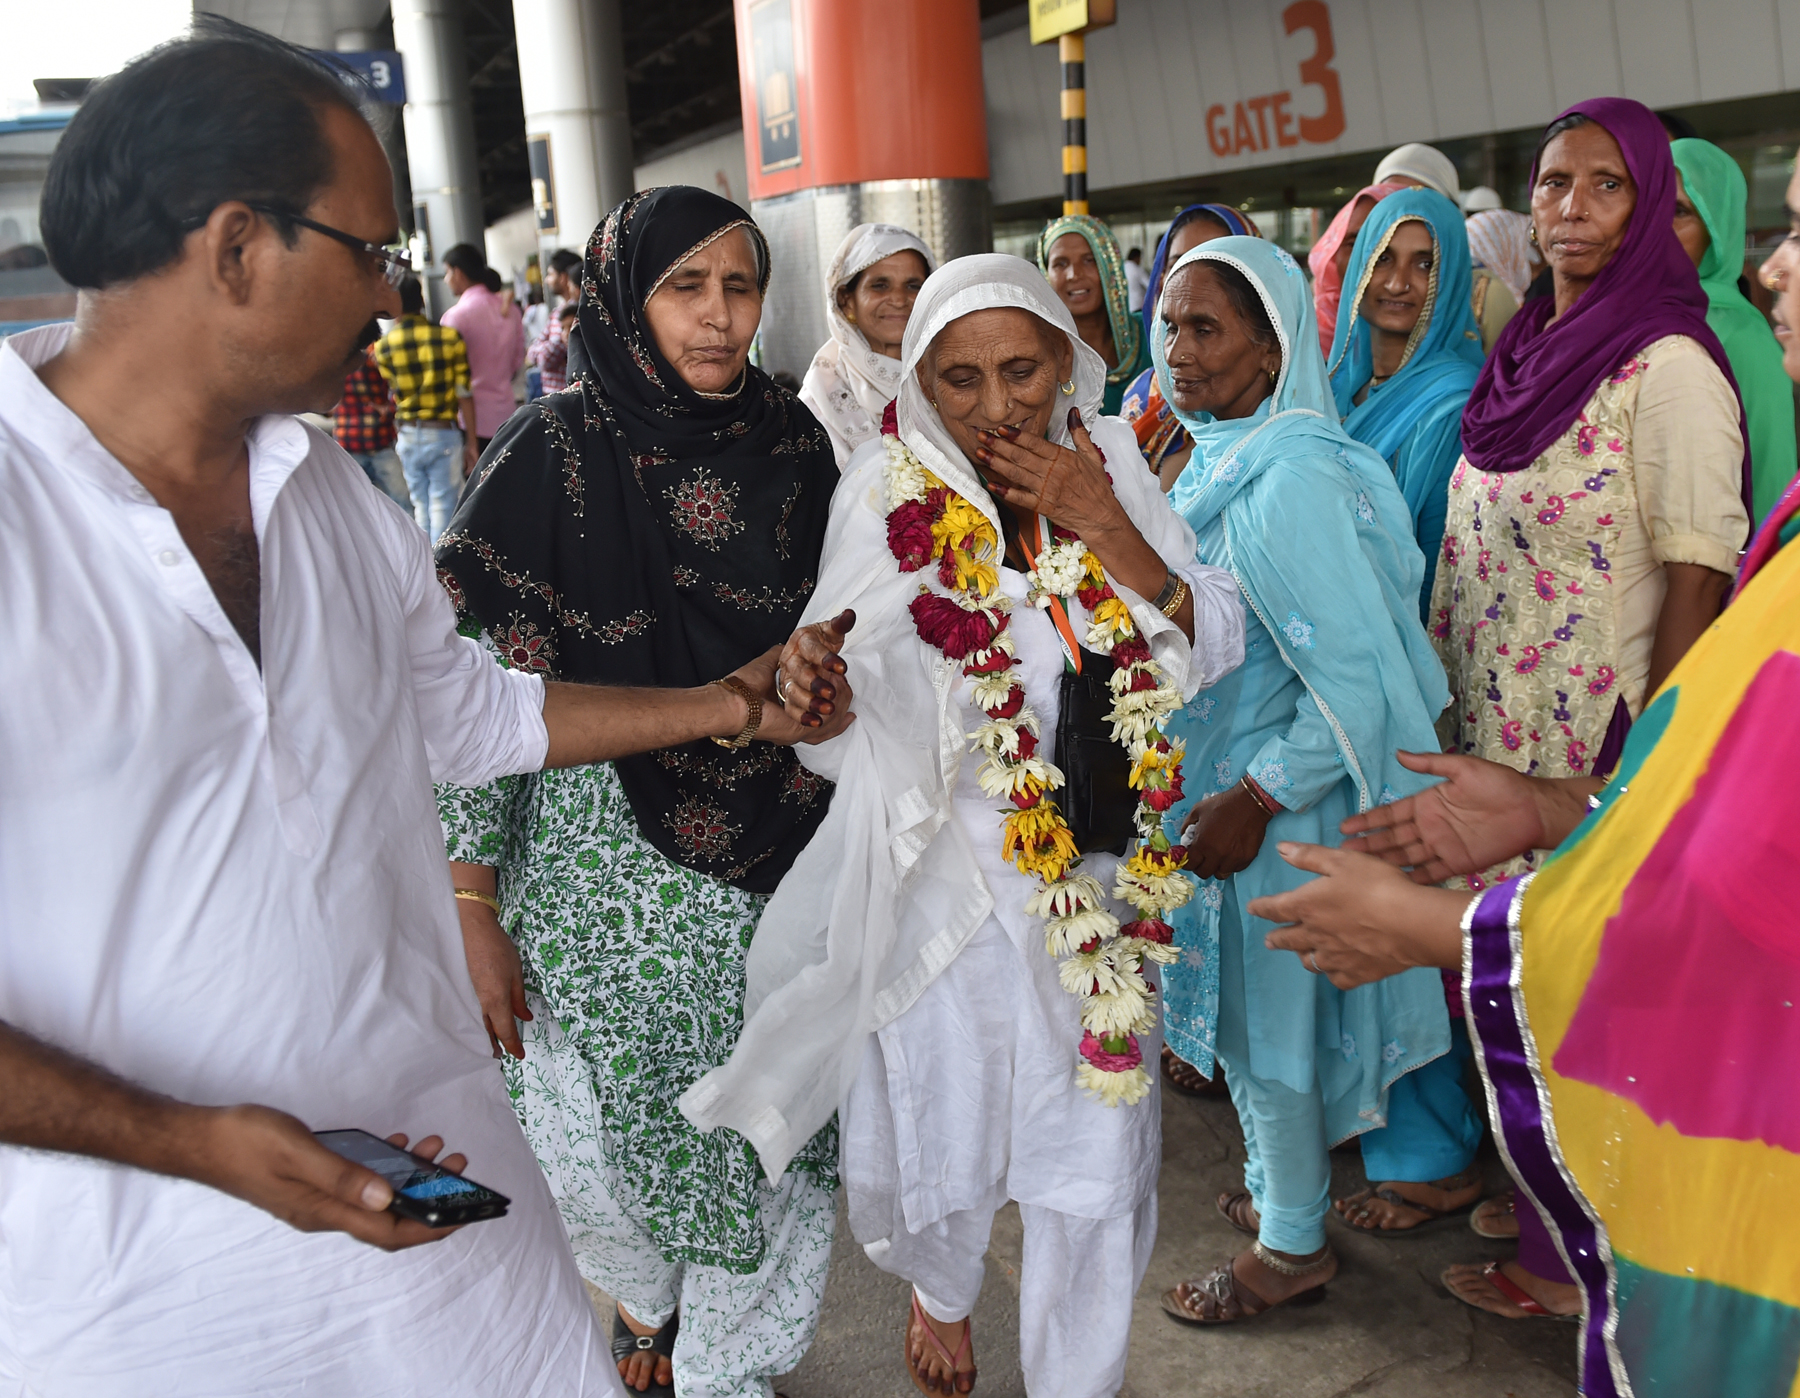 A pilgrim leaves for Haj with a male family member in 2016